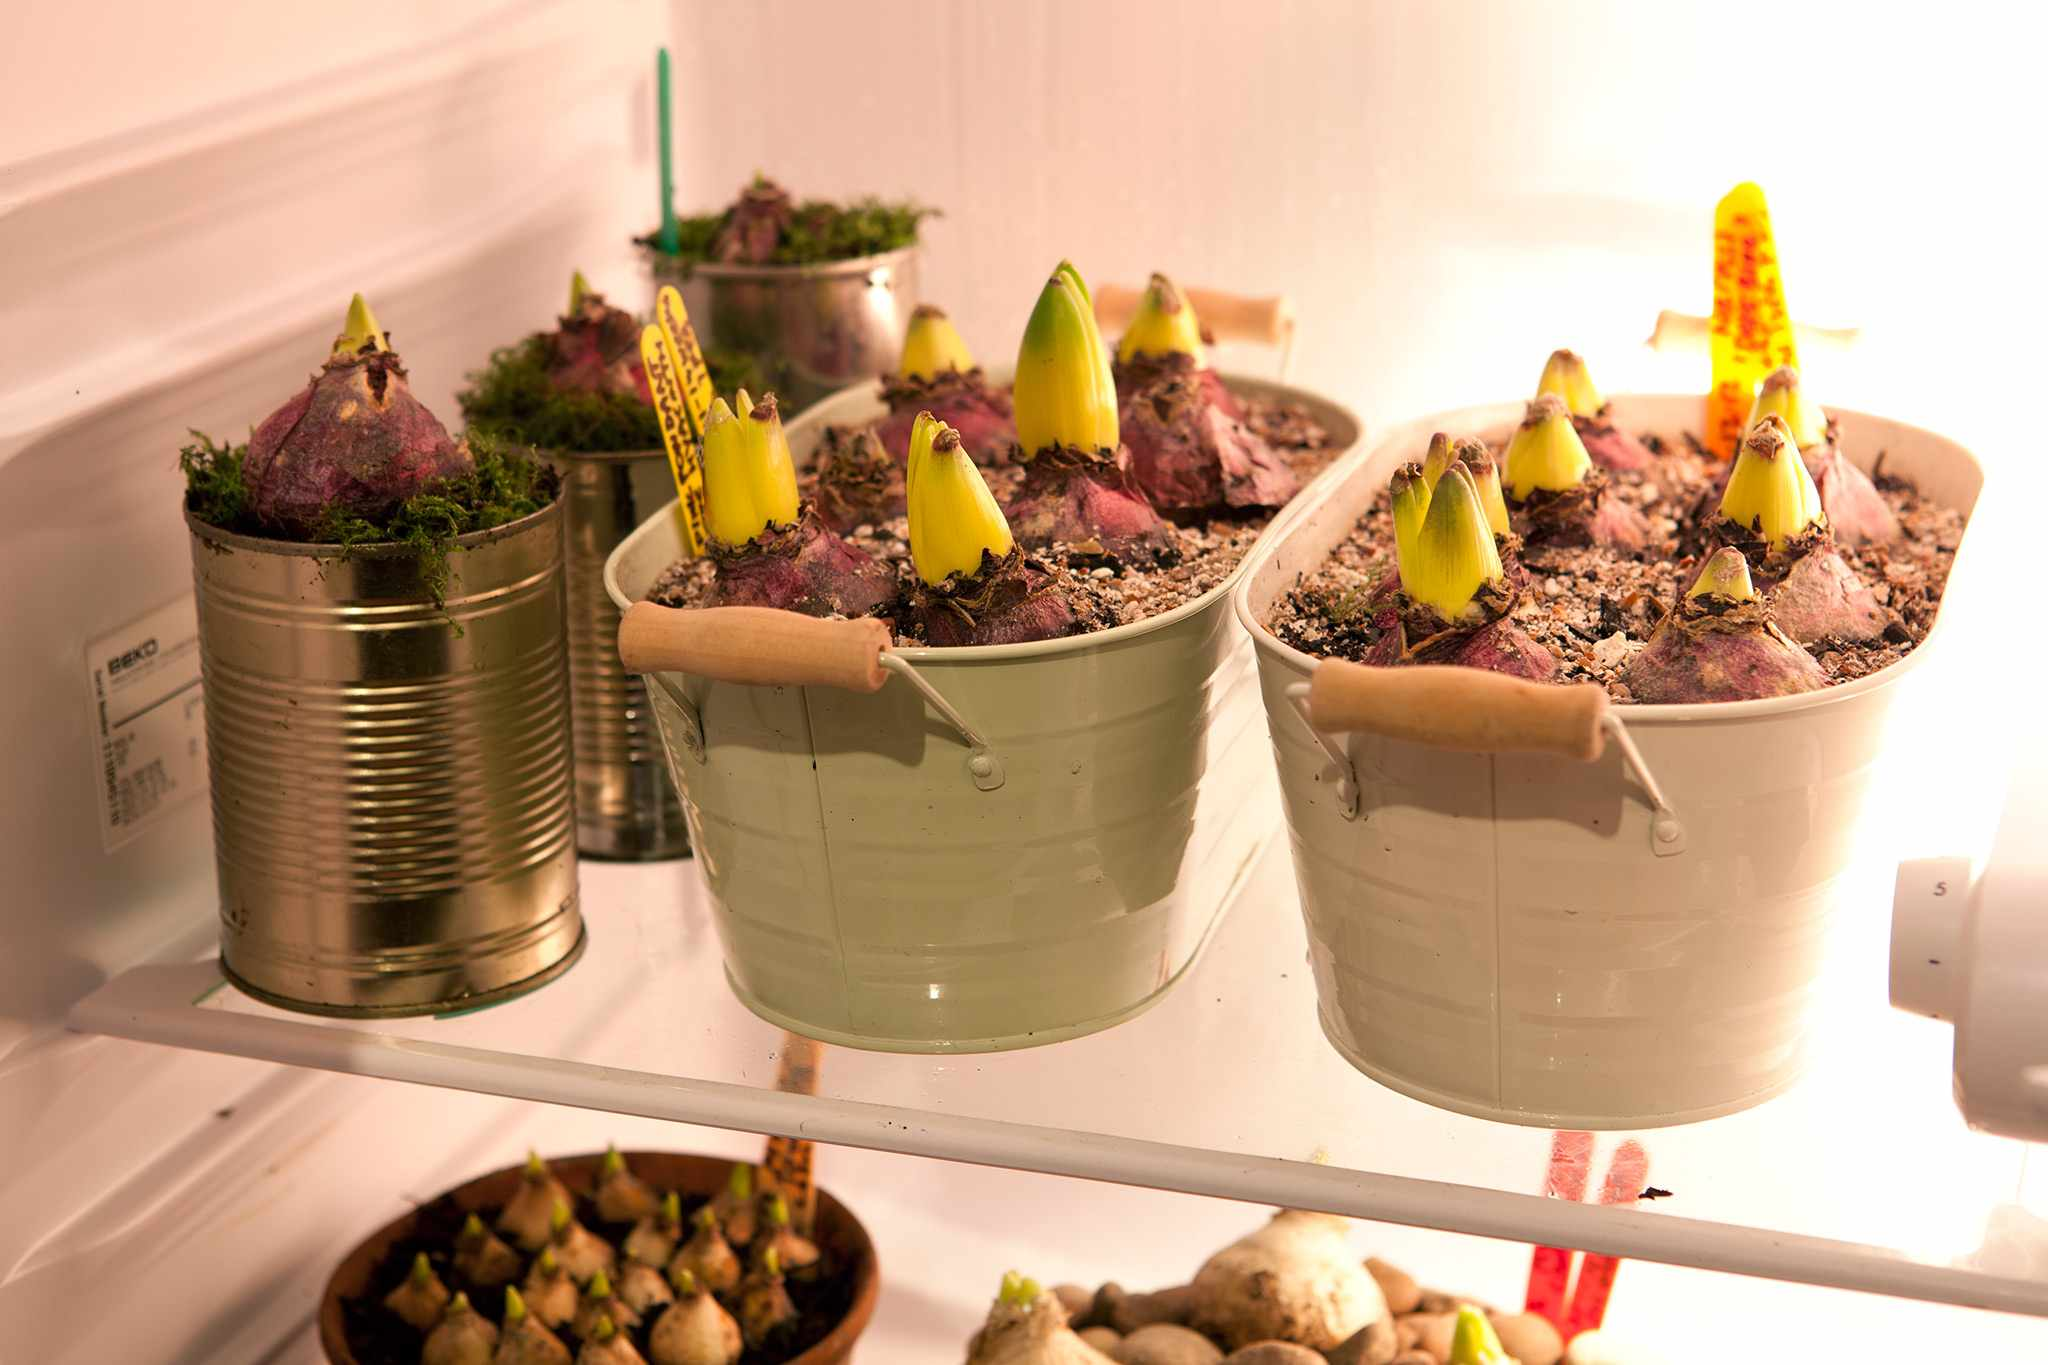 Spring bulbs to force in autumn